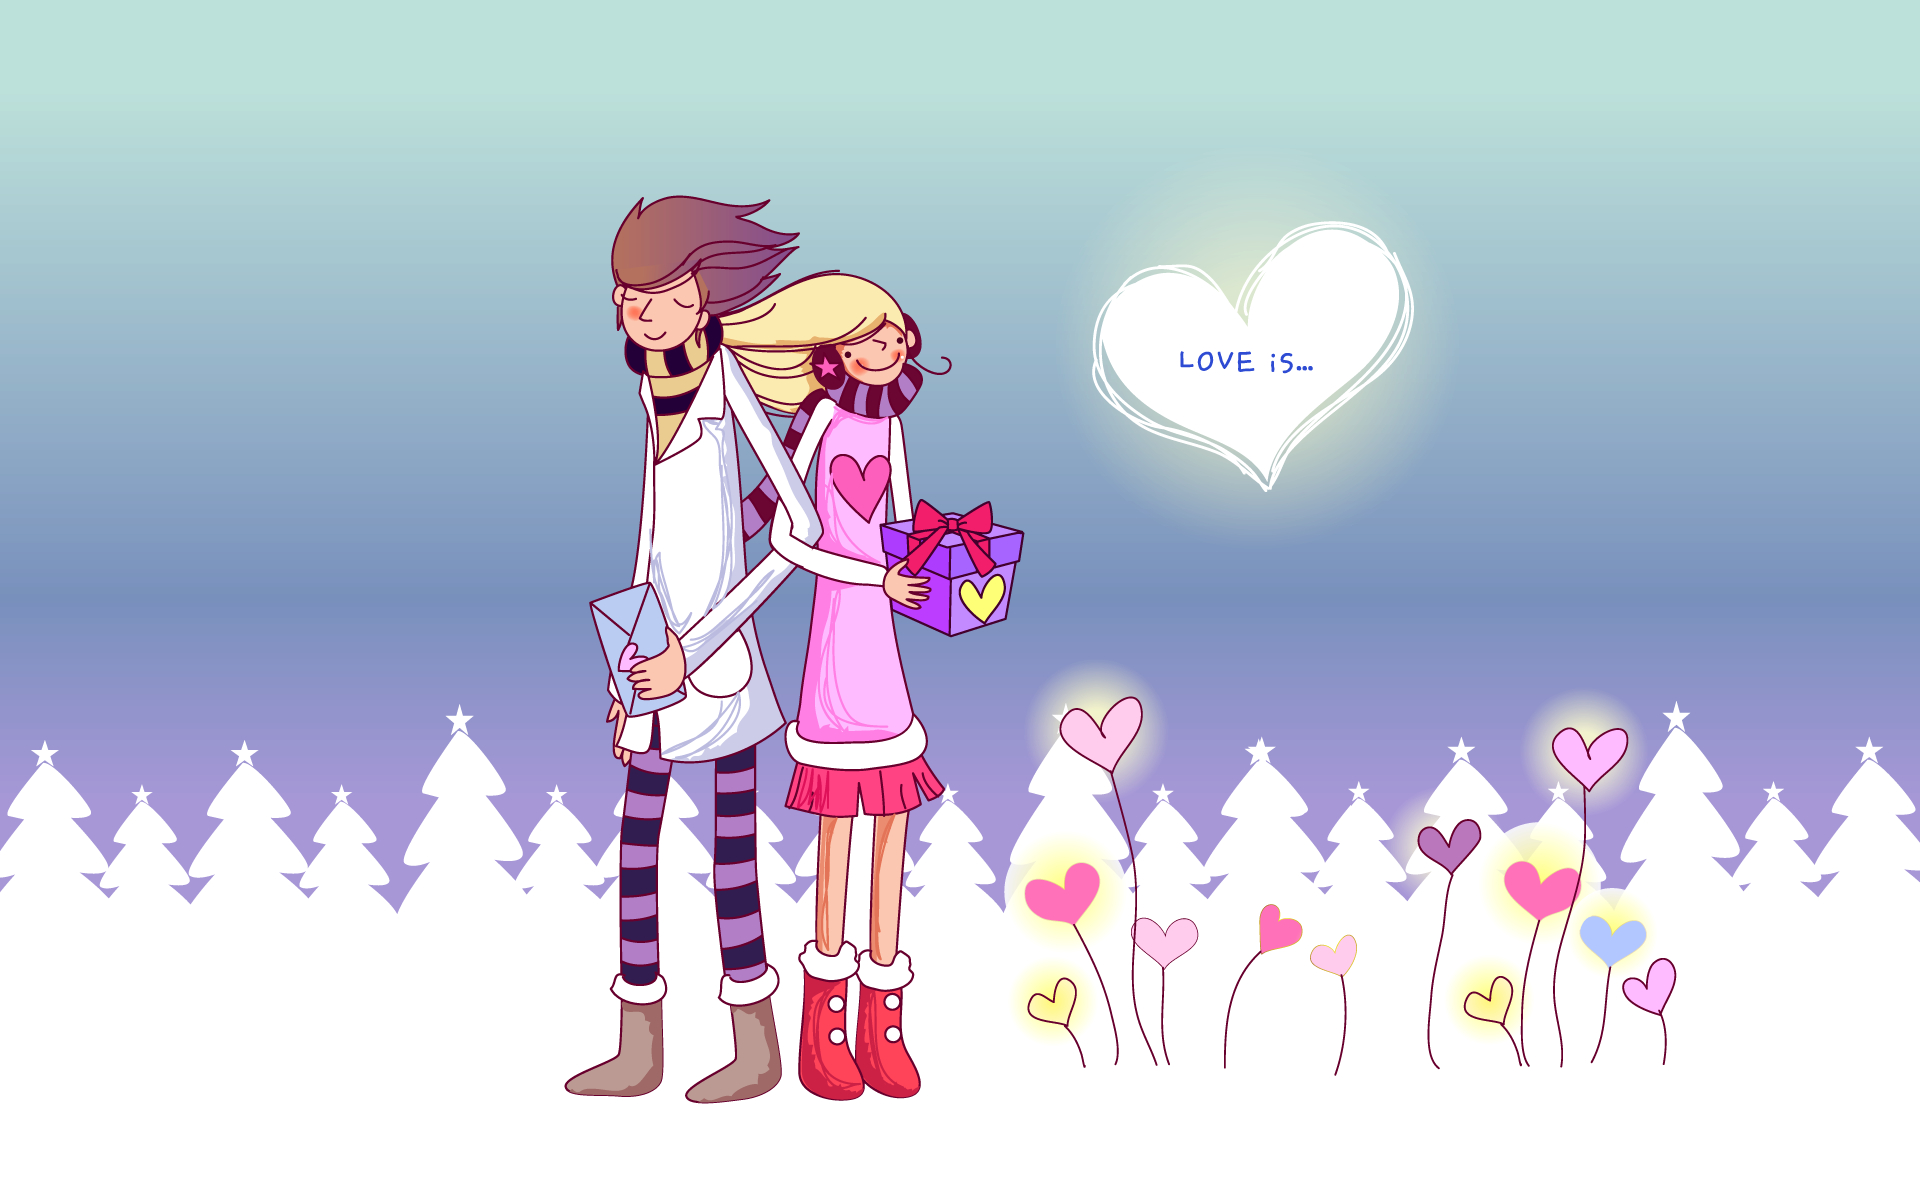 Love New cute cartoon Wallpaper : Love cartoon Image - Wallpaper, High Definition, High Quality, Widescreen